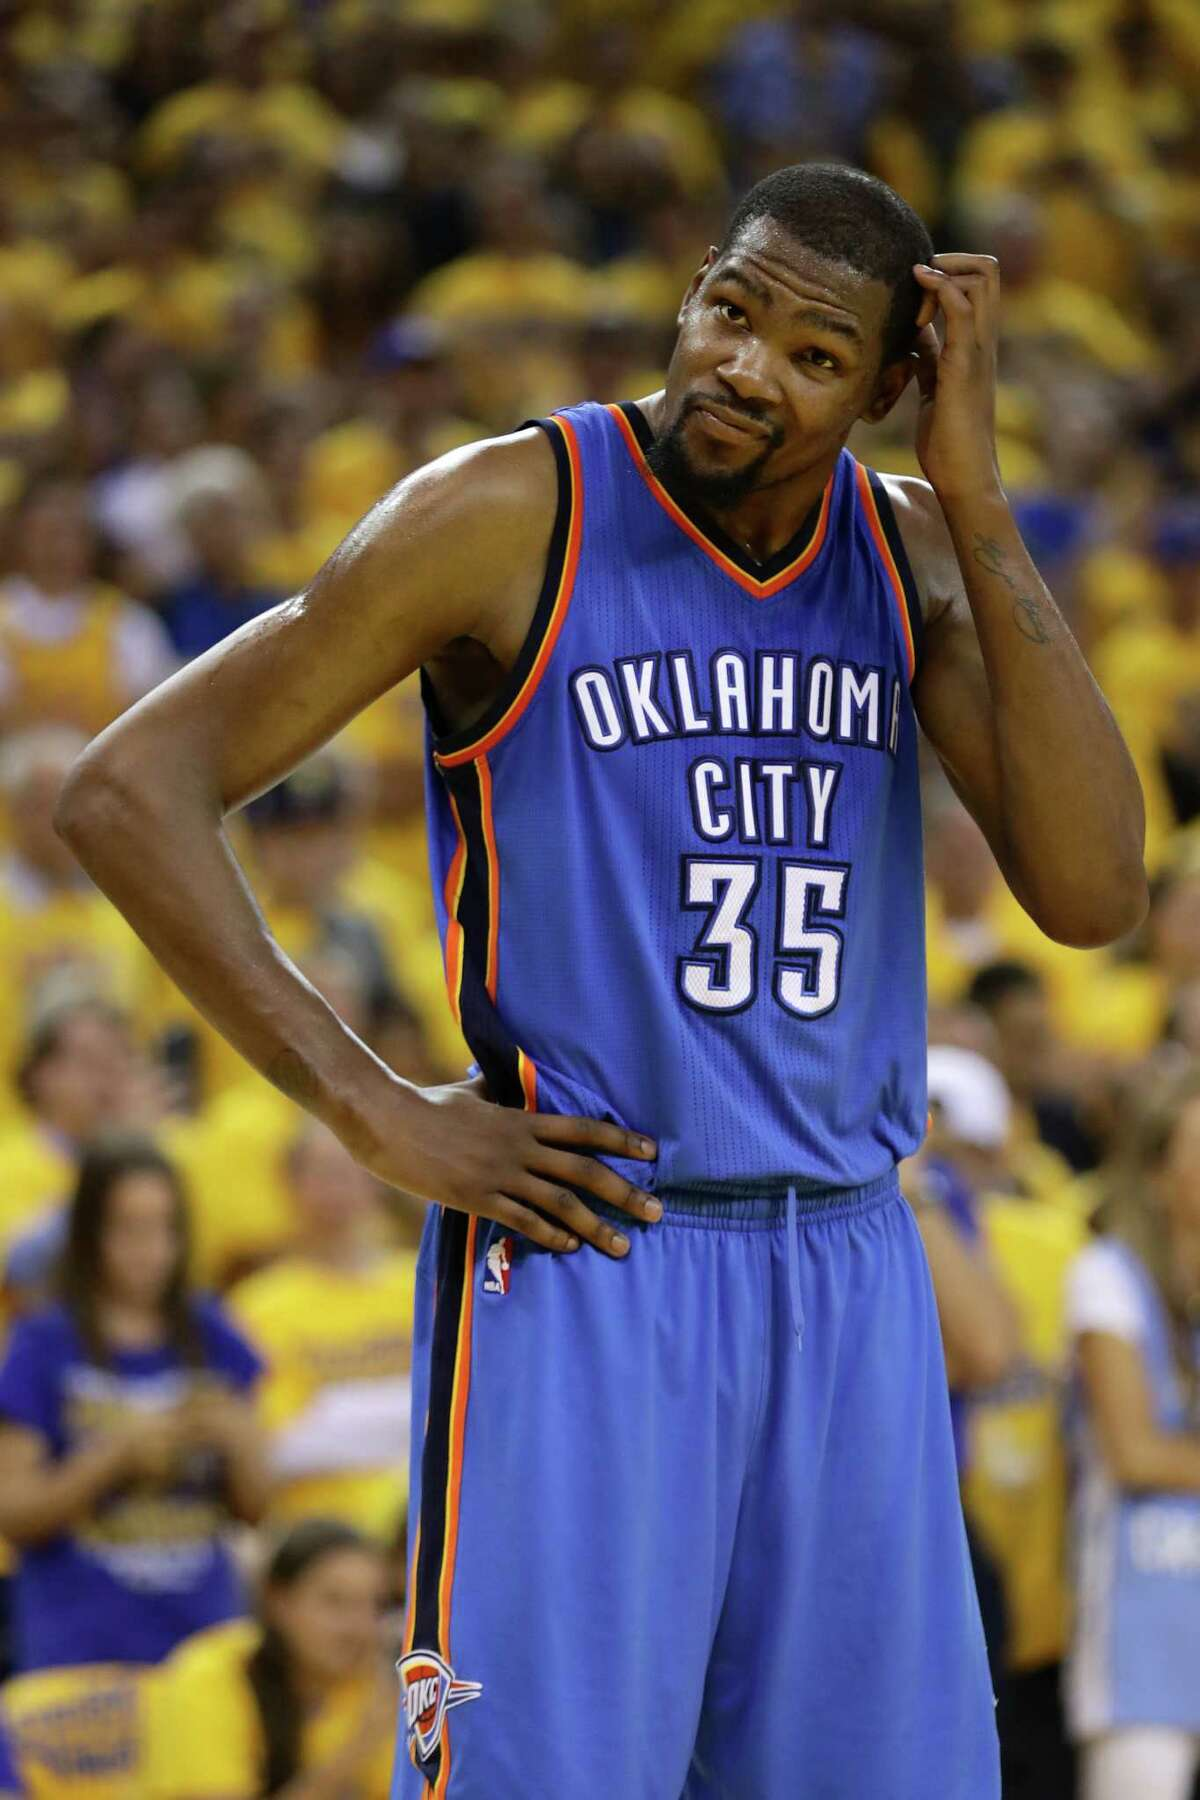 Kevin Durant, Oklahoma City James Harden said he would try to recruit his buddy and former teammate. If Durant will give the Rockets an audience, they will make their pitch, but there is little reason to believe he will leave the Thunder to join a team that went 41-41 last season. He could consider contenders, even one that won 73 games last season and eliminated the Thunder in the playoffs, or he could be the missing superstar in Boston. But he is already on a team on the rise, reinforced with better depth after Thursday's trade, and in a town that reveres him.